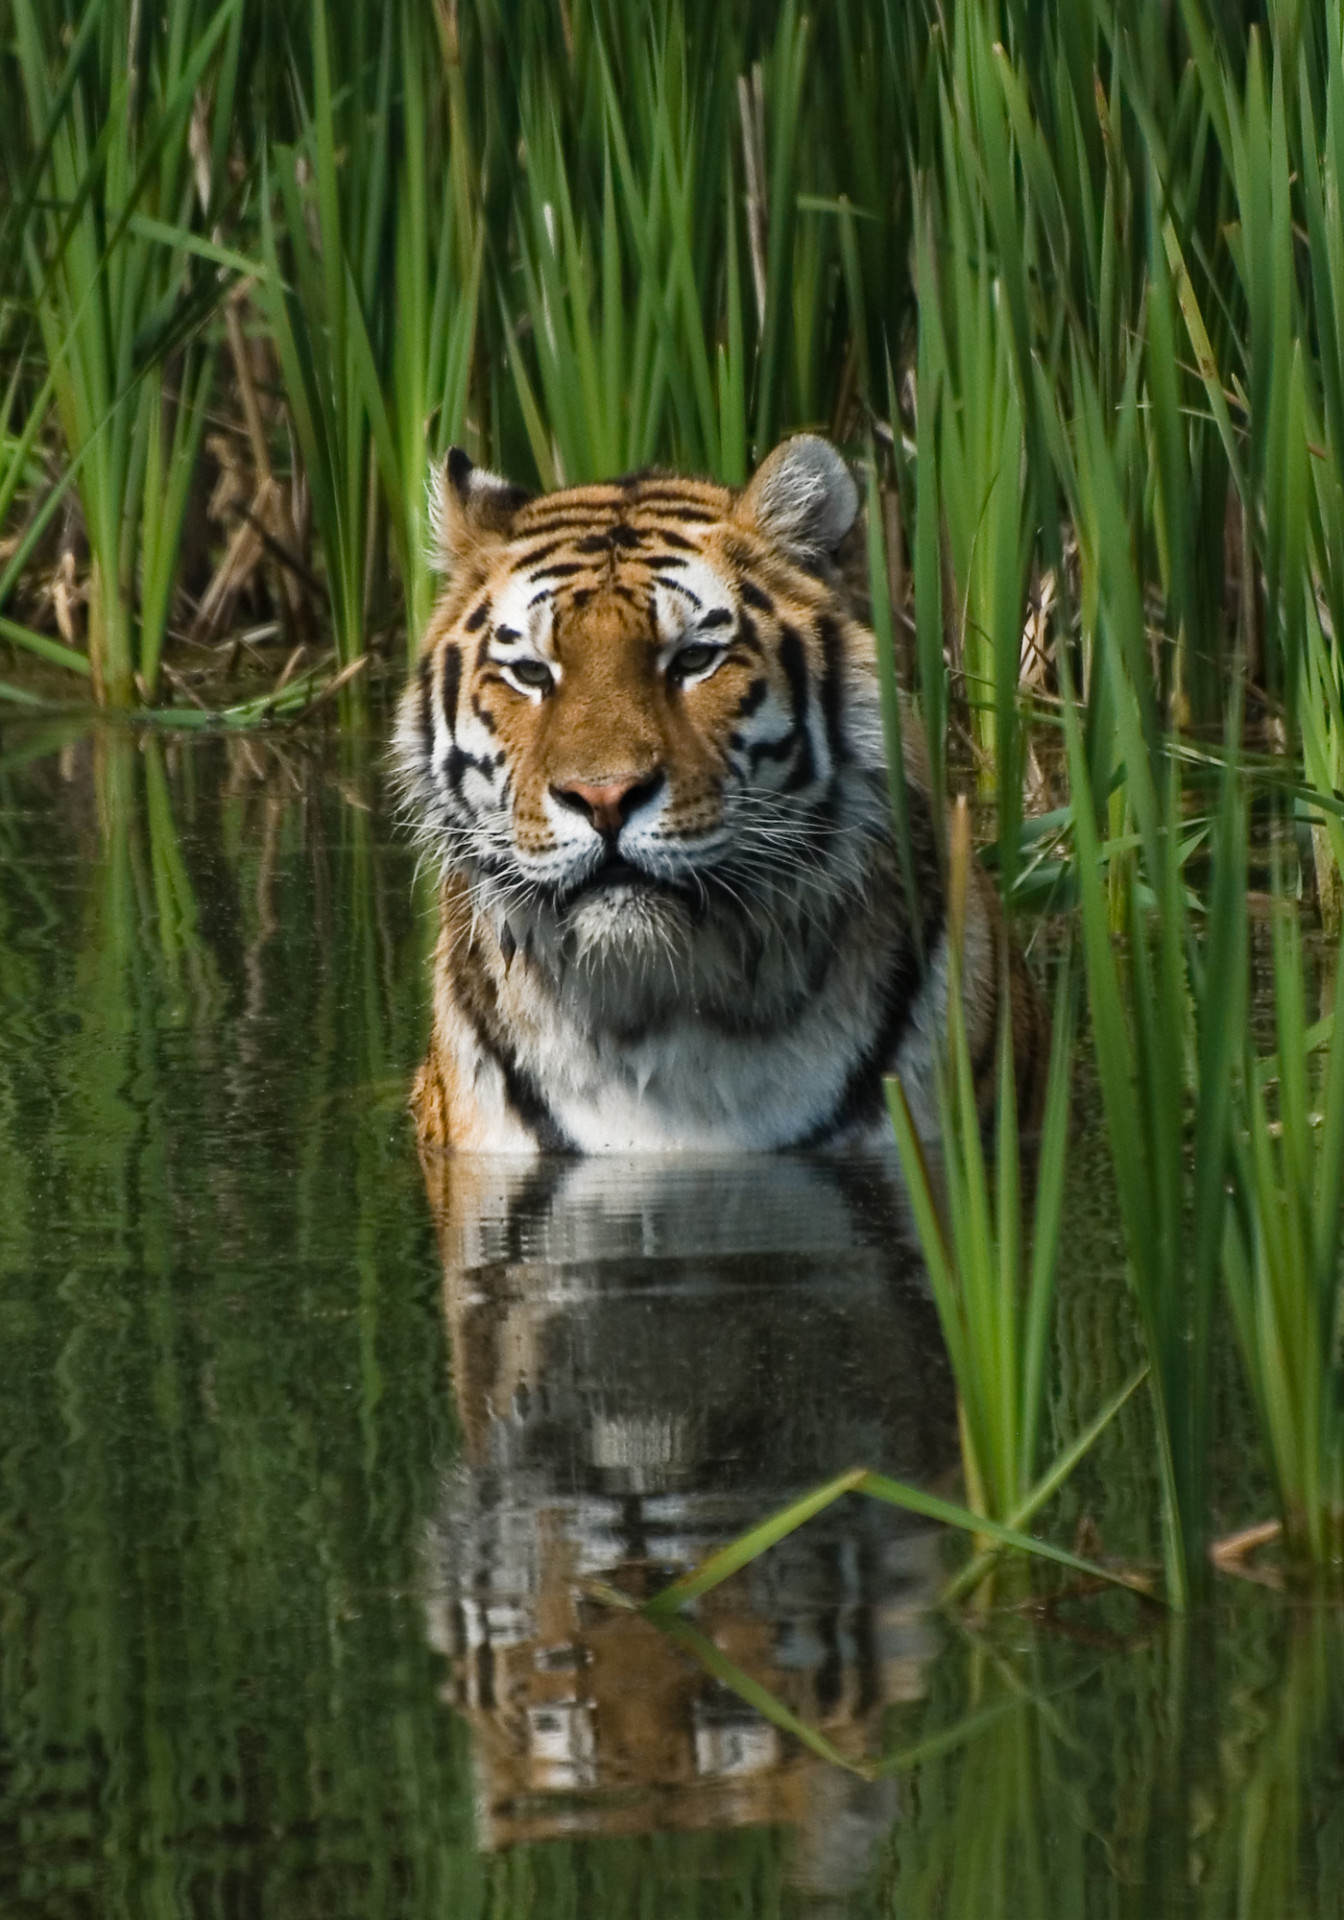 IB Environmental Systems & Societies: 3.4 Tiger recovery in India